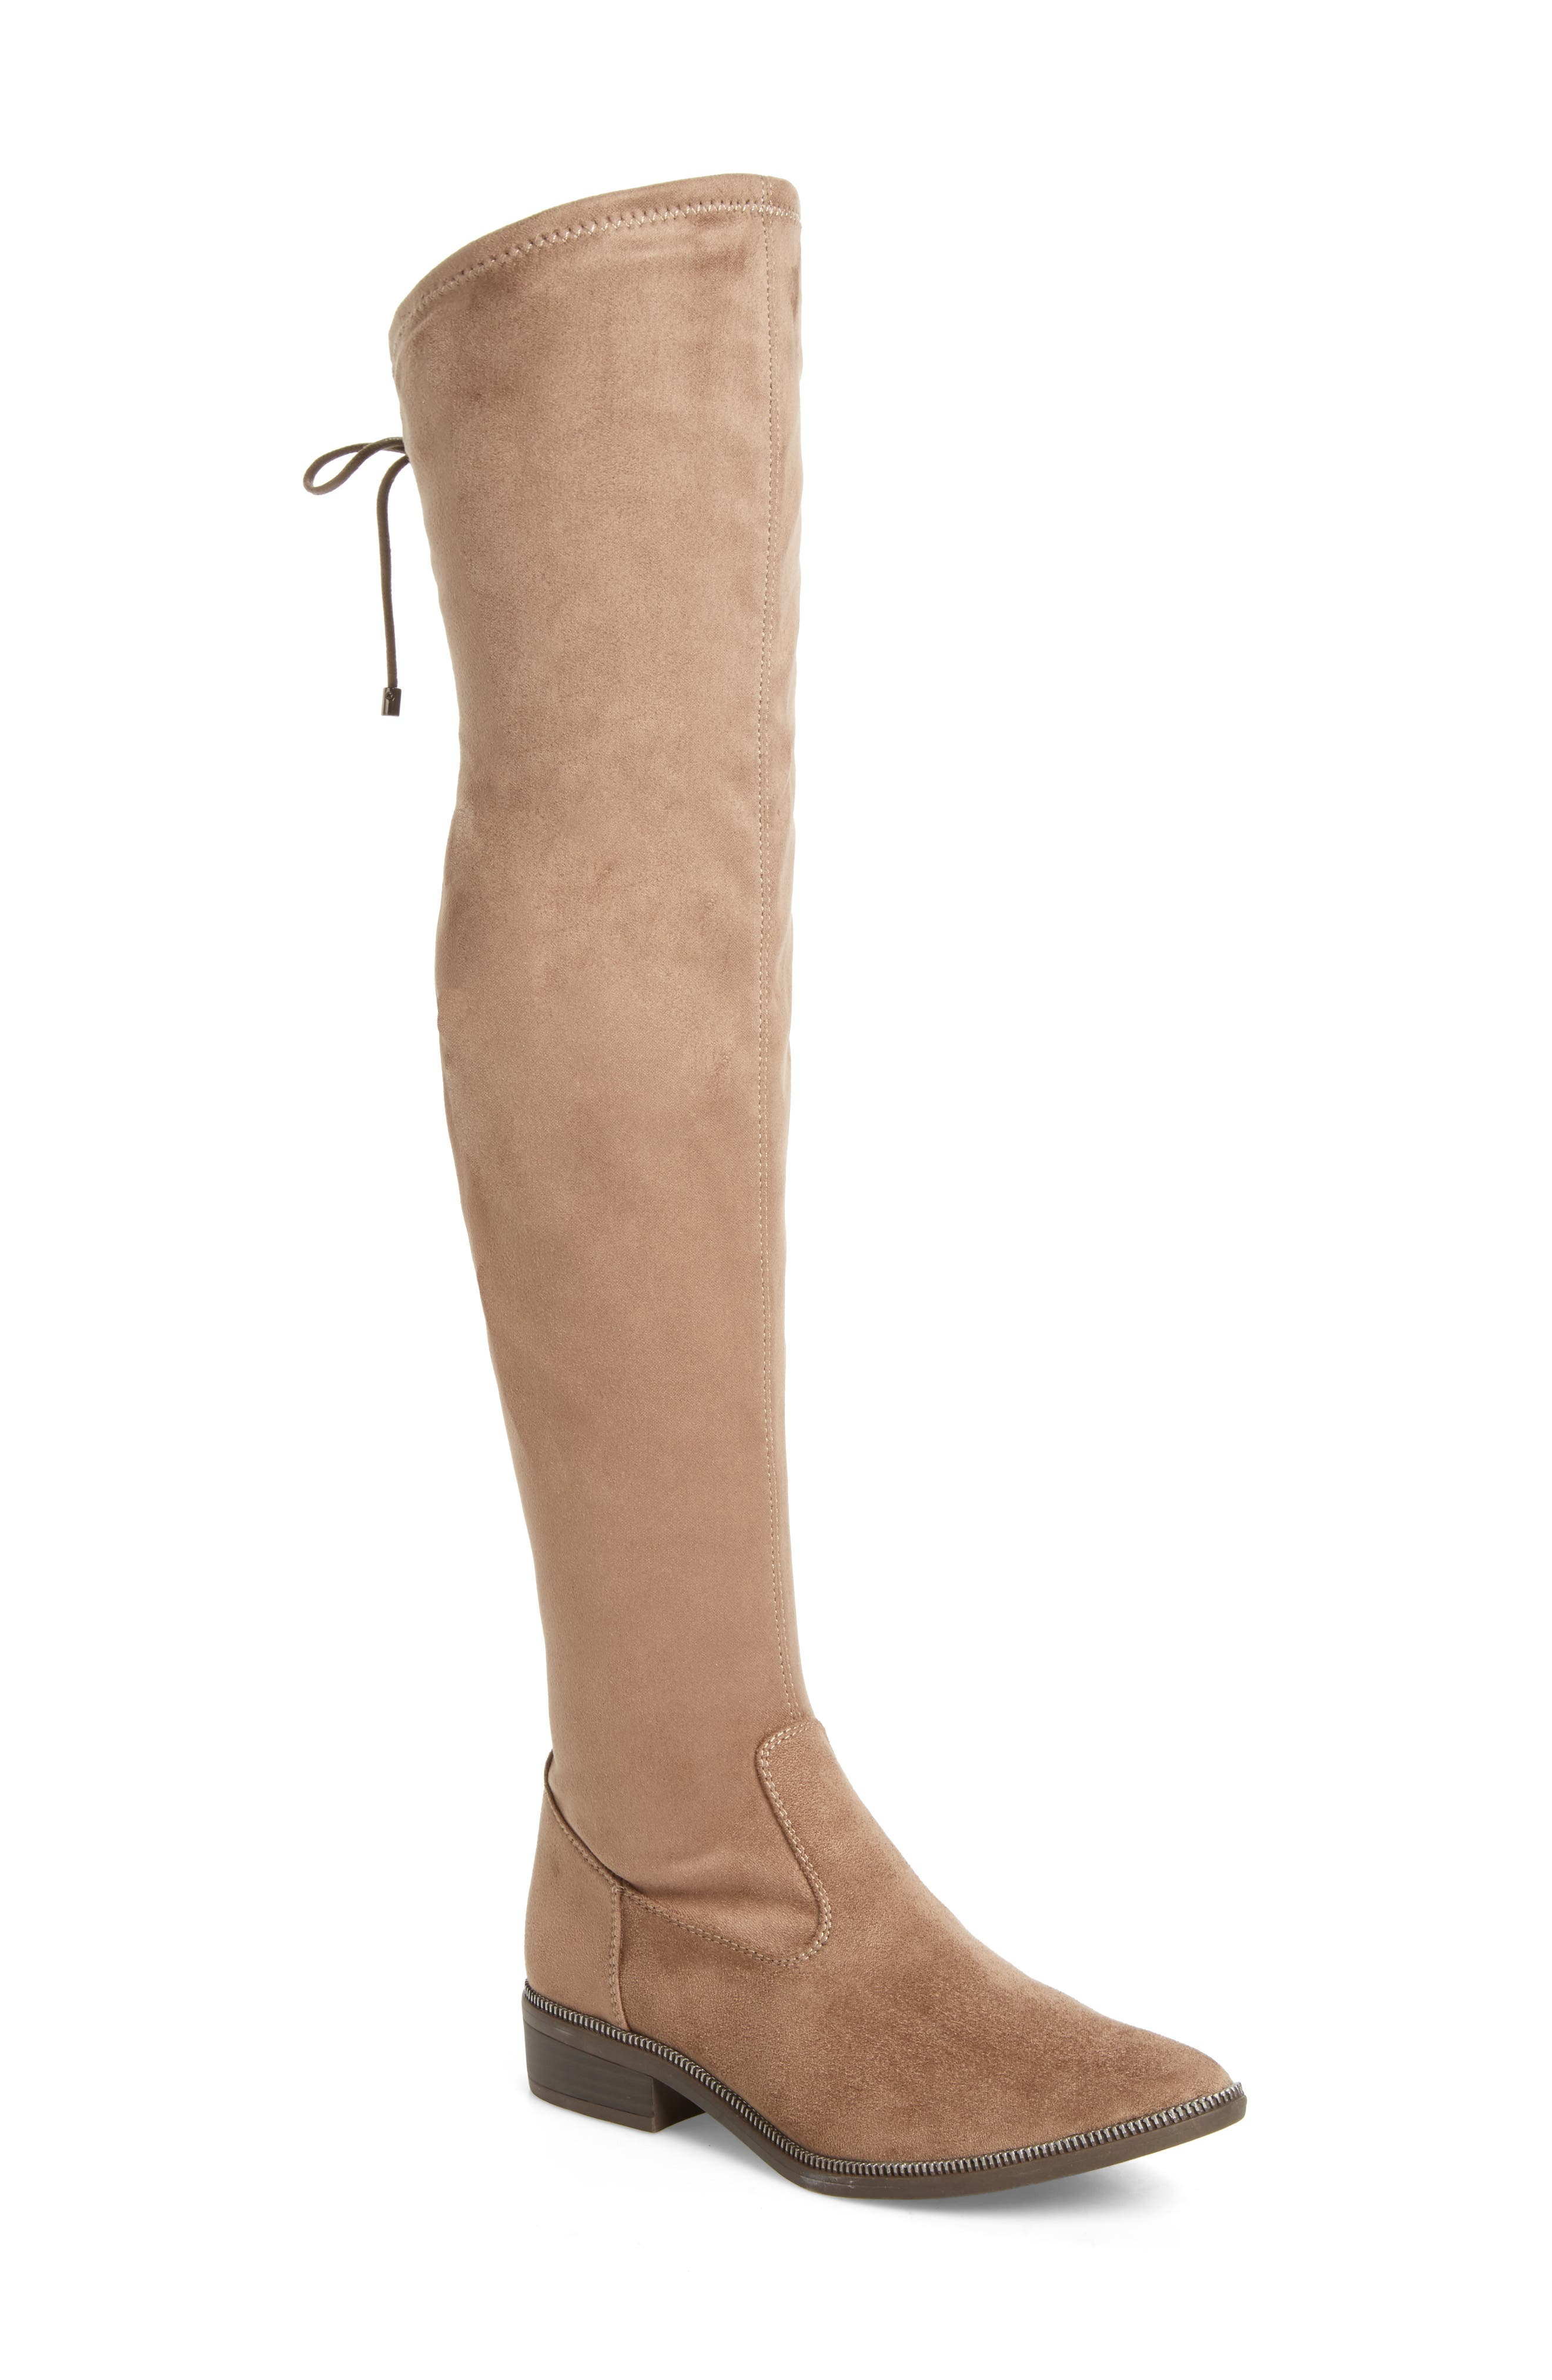 Tamaris Phanie Over the Knee Stretch Boot (Women)